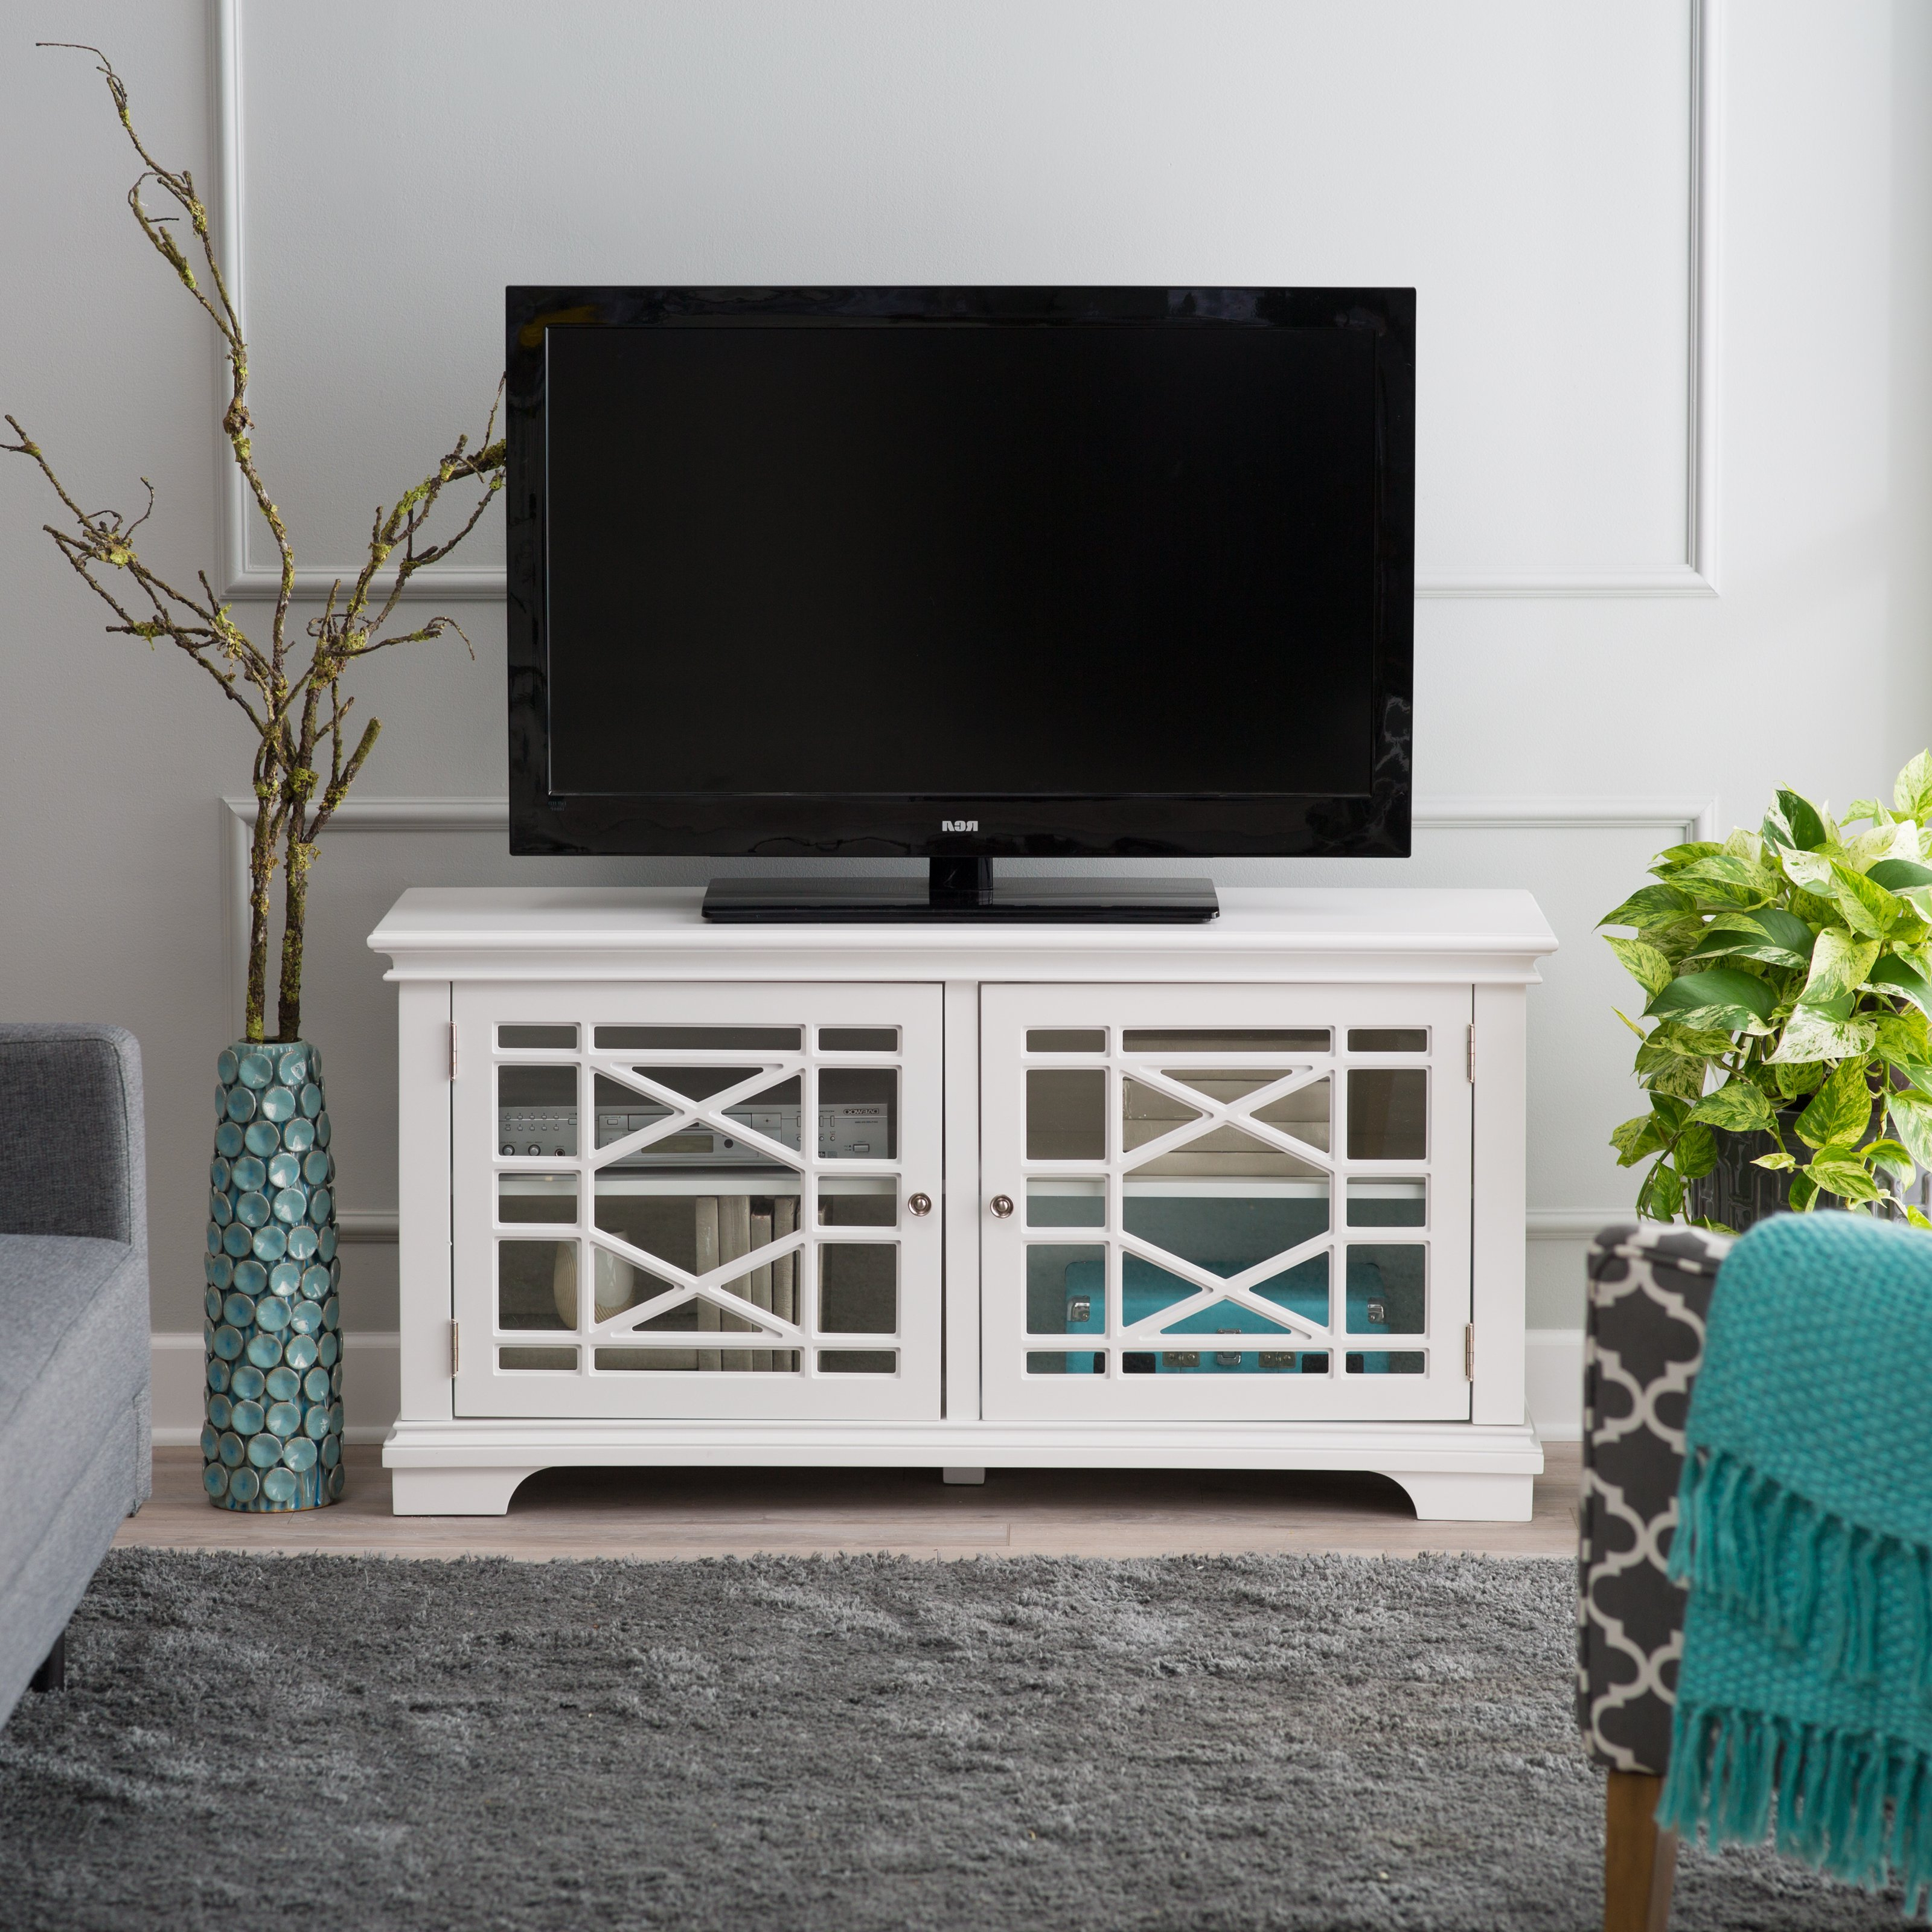 Tv Stands & Entertainment Centers | Hayneedle Pertaining To Laurent 60 Inch Tv Stands (View 20 of 20)